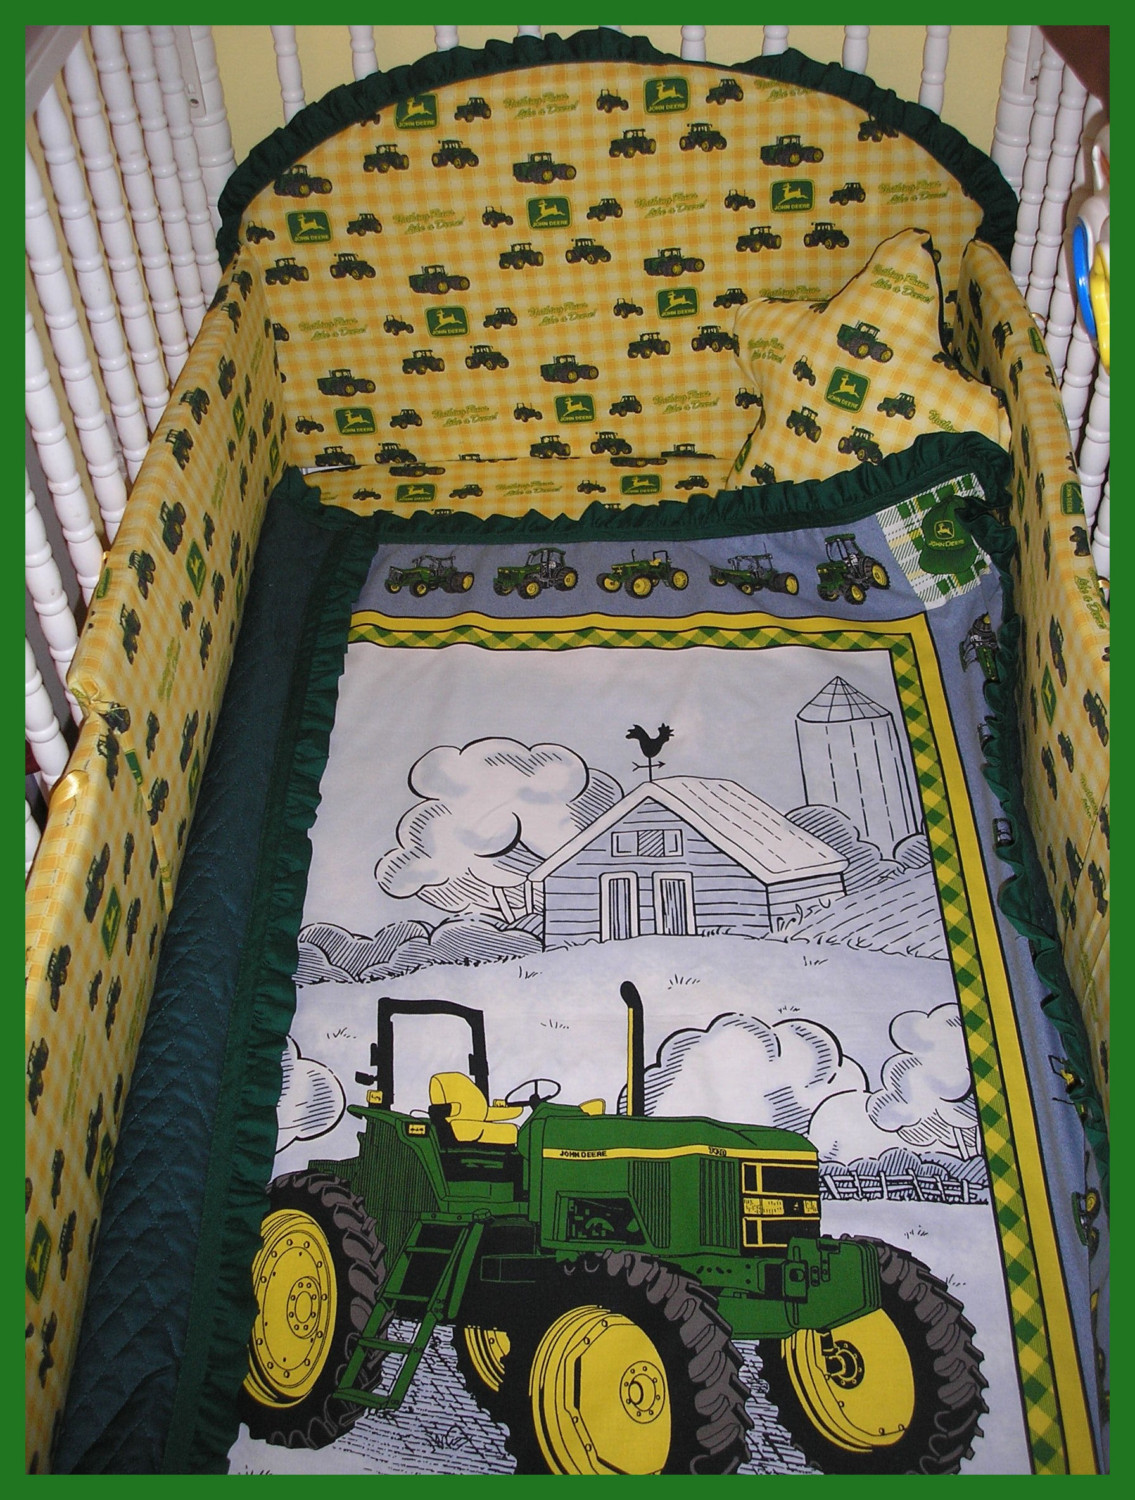 John Deer Bed | John Deere Bedding | John Deere Nursery Bedding